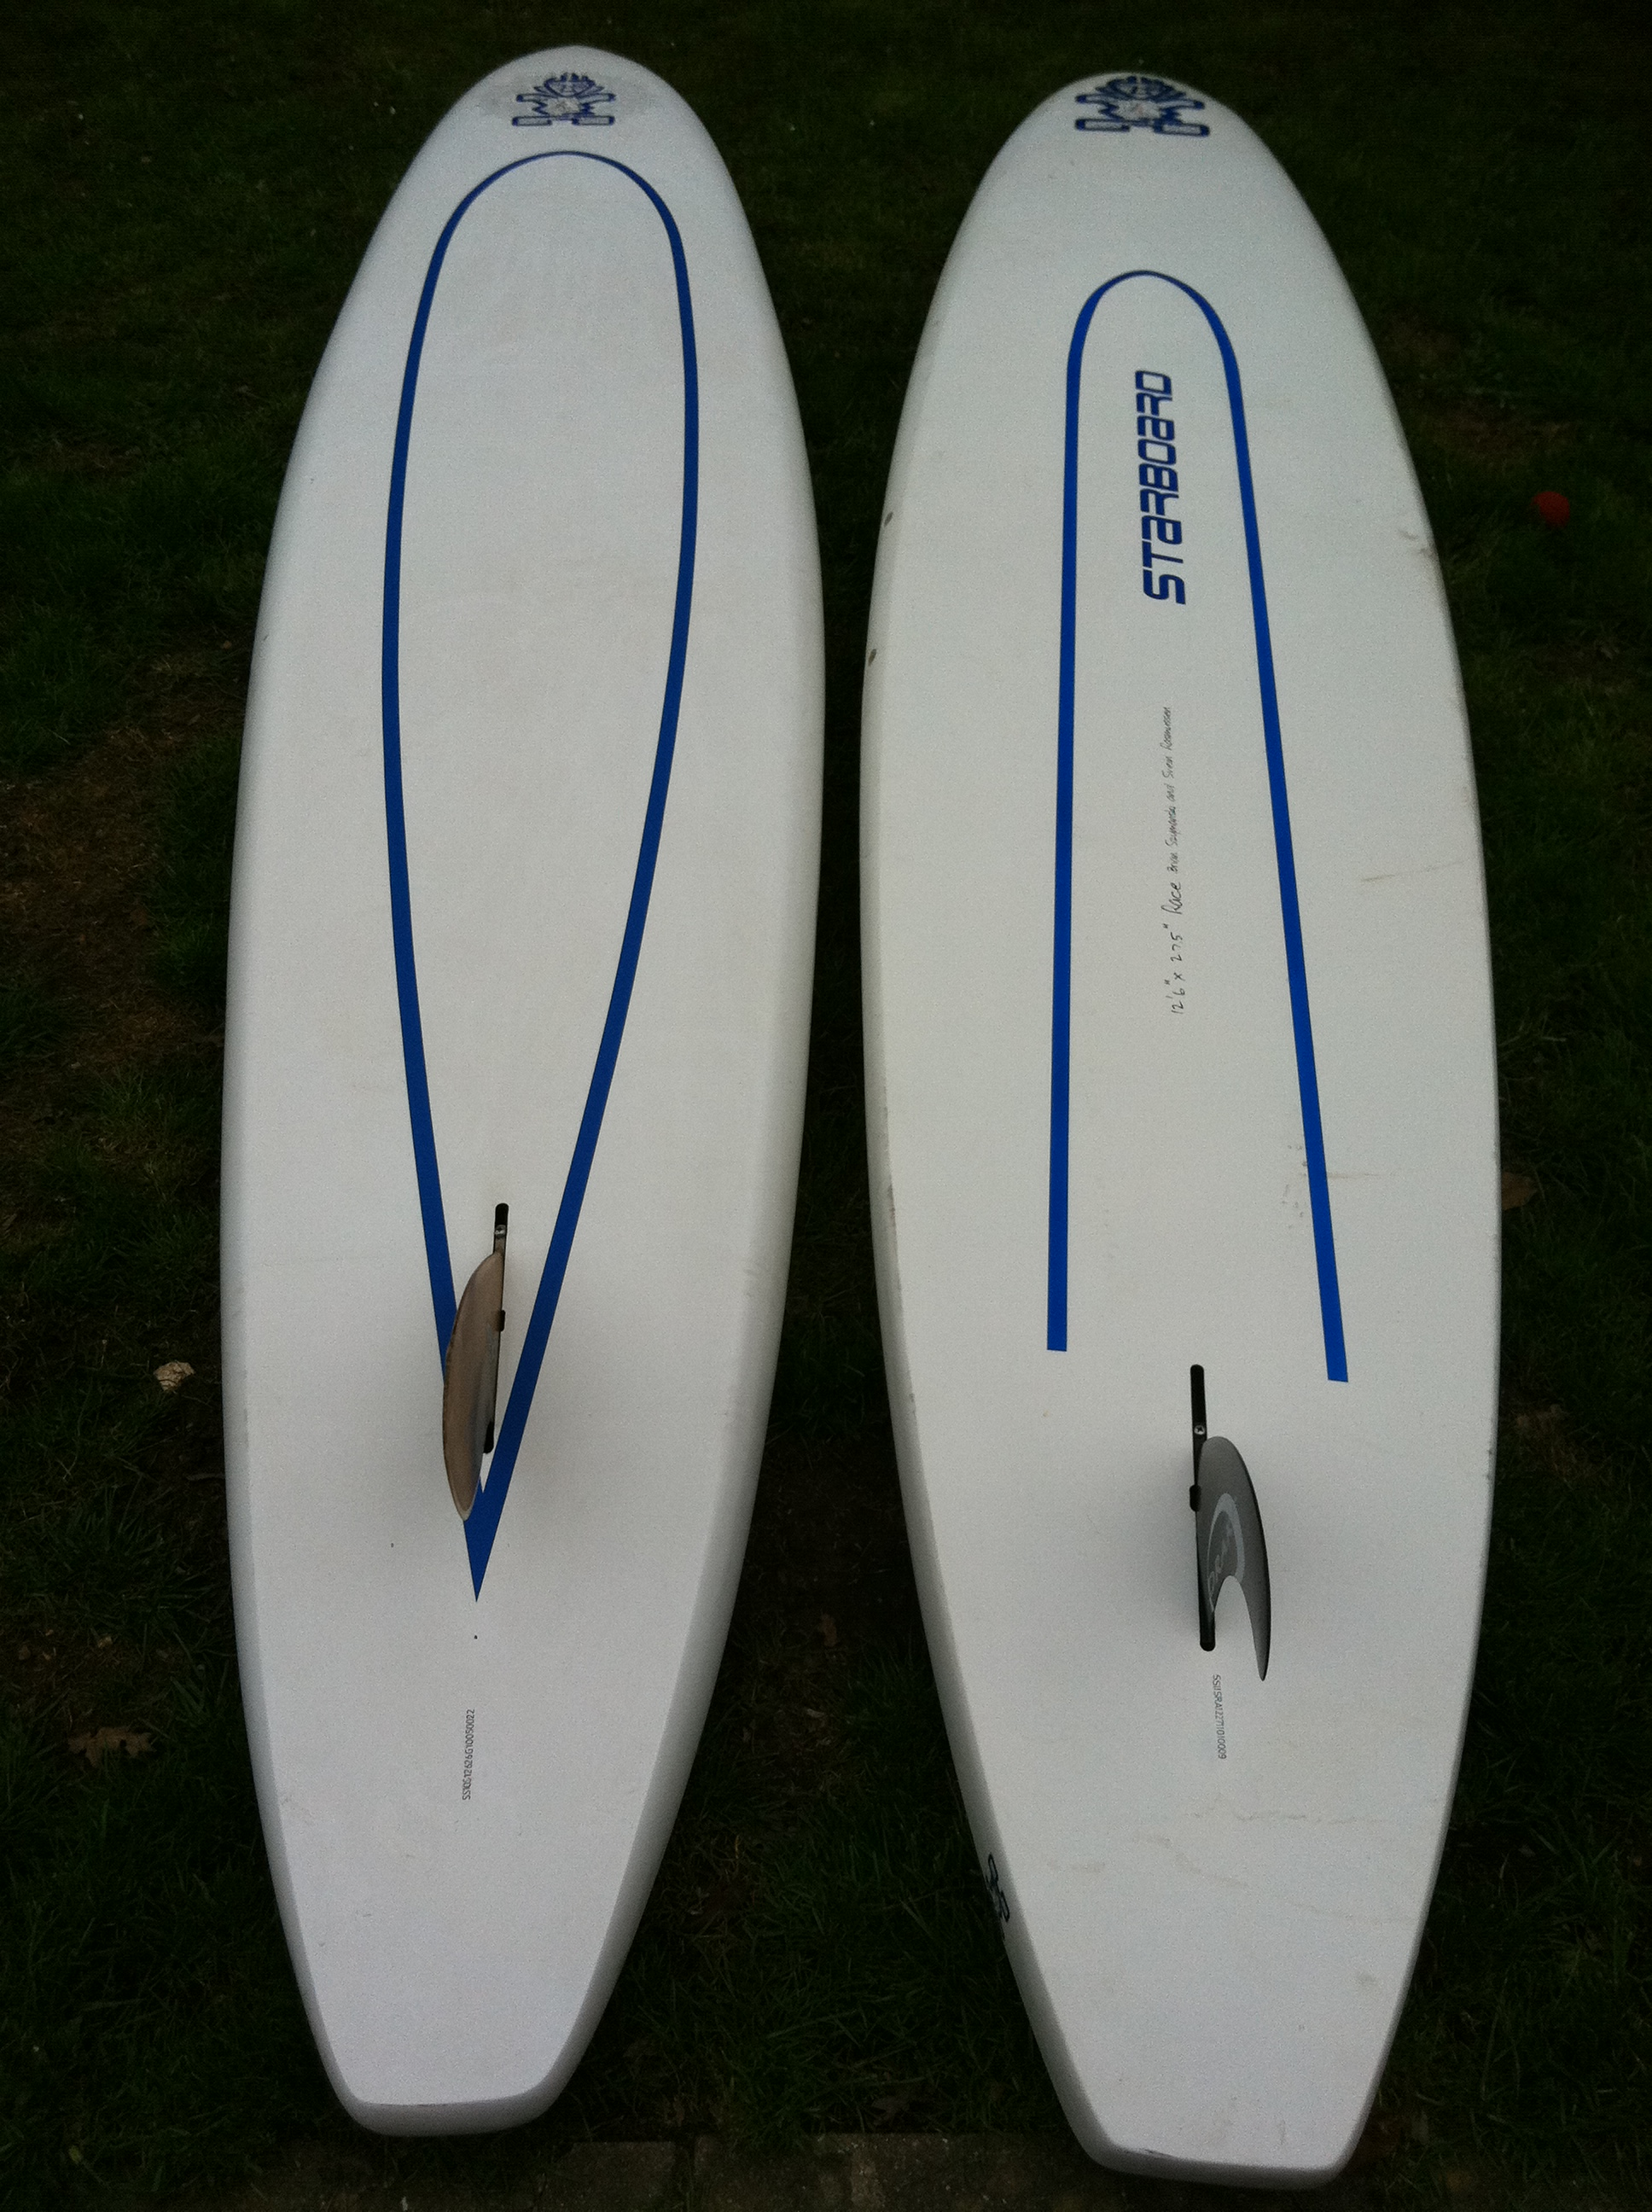 Starboard 12'6 x 26.5 Surf Race (2010) vs 12'6 x 27.5 Race (2011)